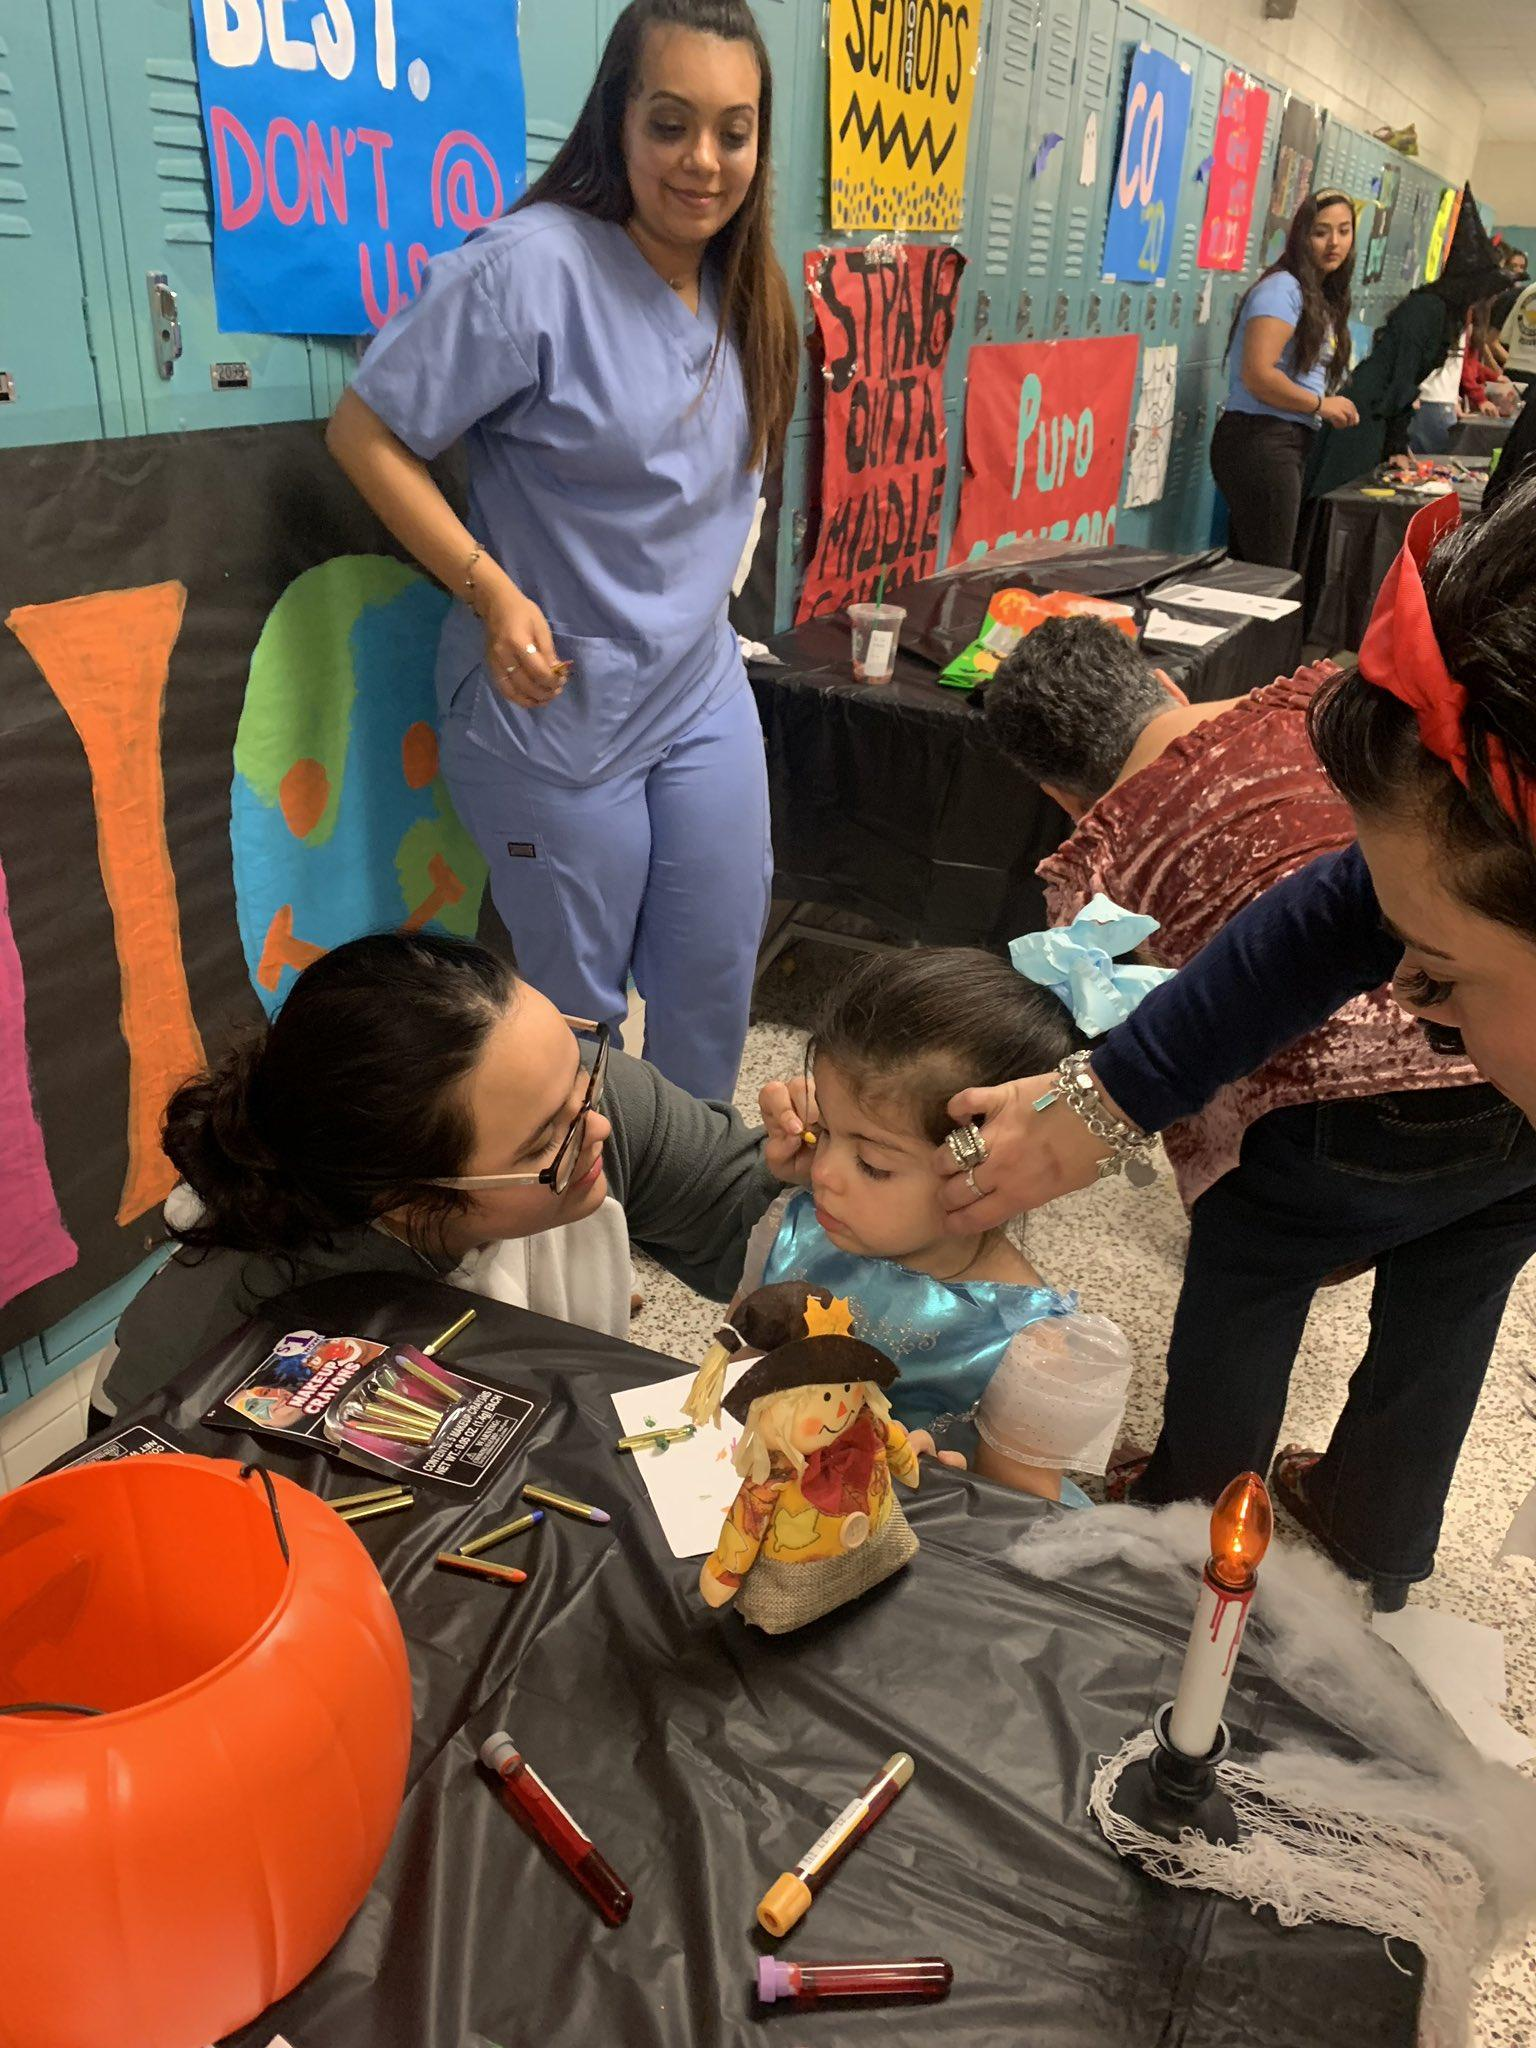 two women putting makeup on a child's face for Halloween